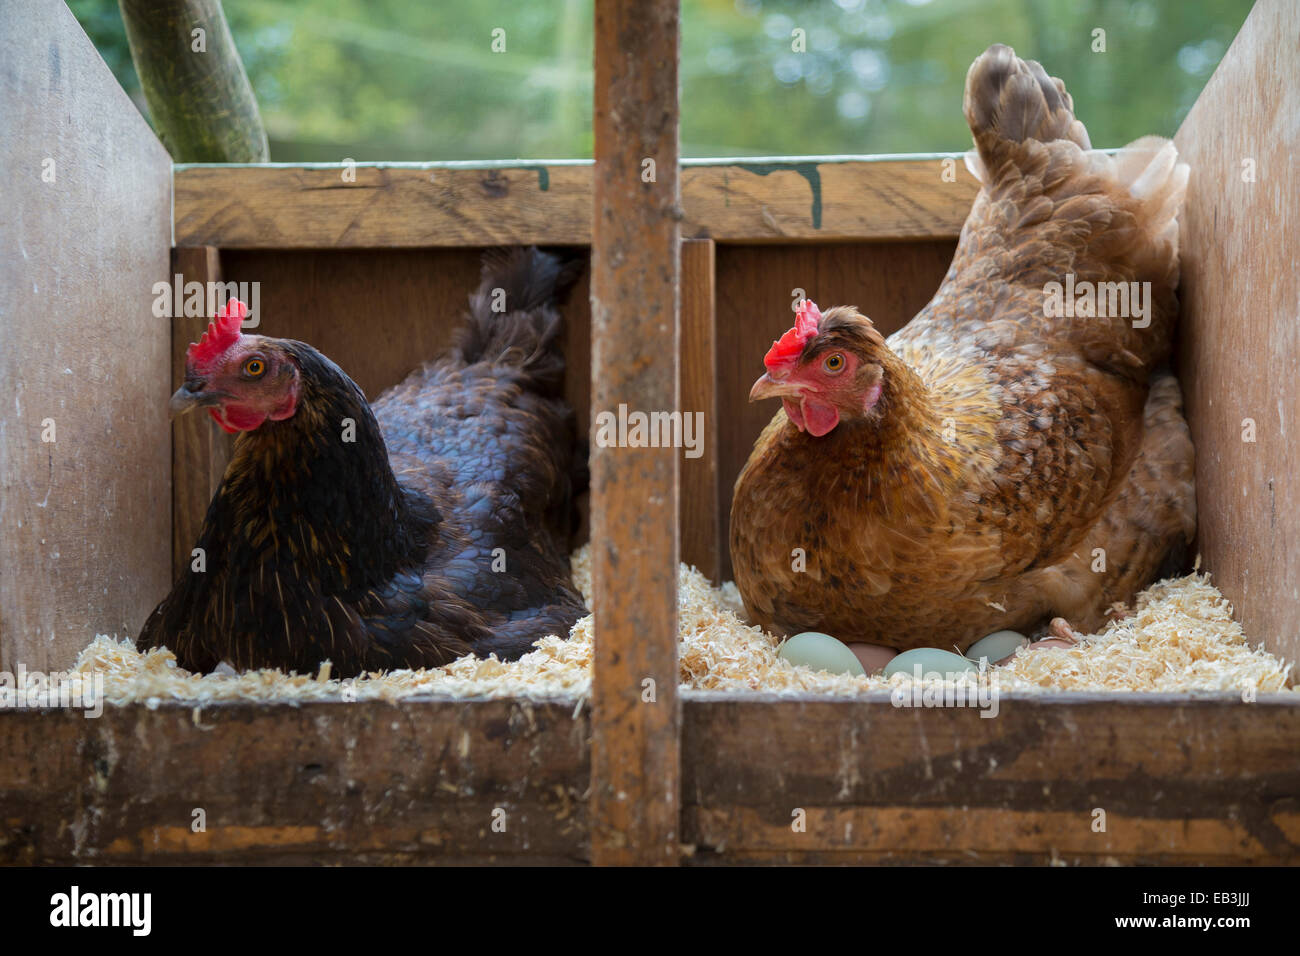 Chicken Sitting On Eggs: Two Free Range Hens Sitting On Eggs In The Hen House Stock